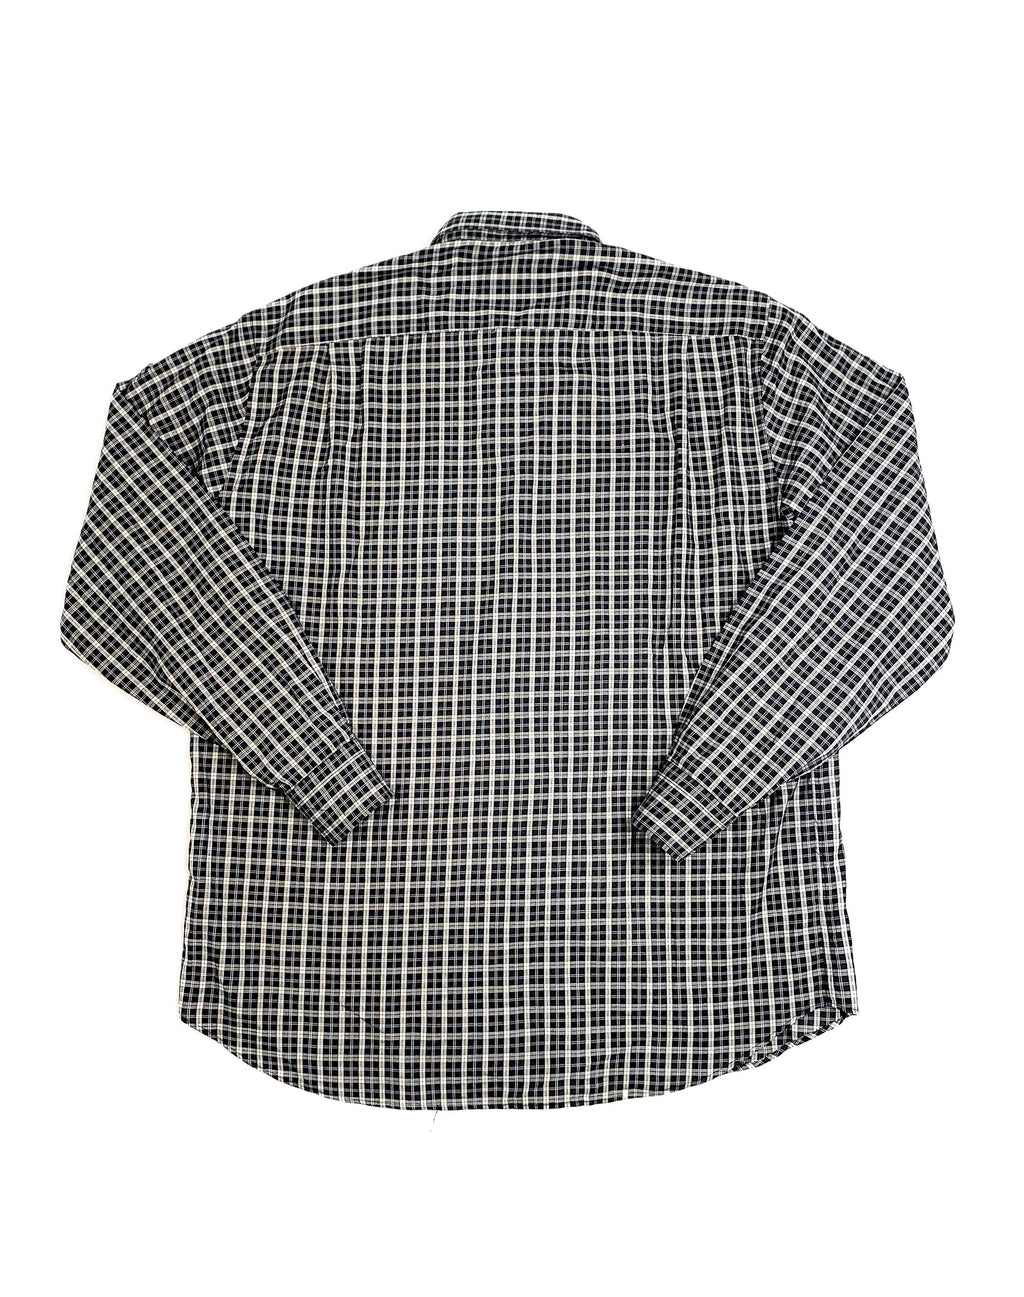 VALENTINO CHARCOAL CHECK SHIRT